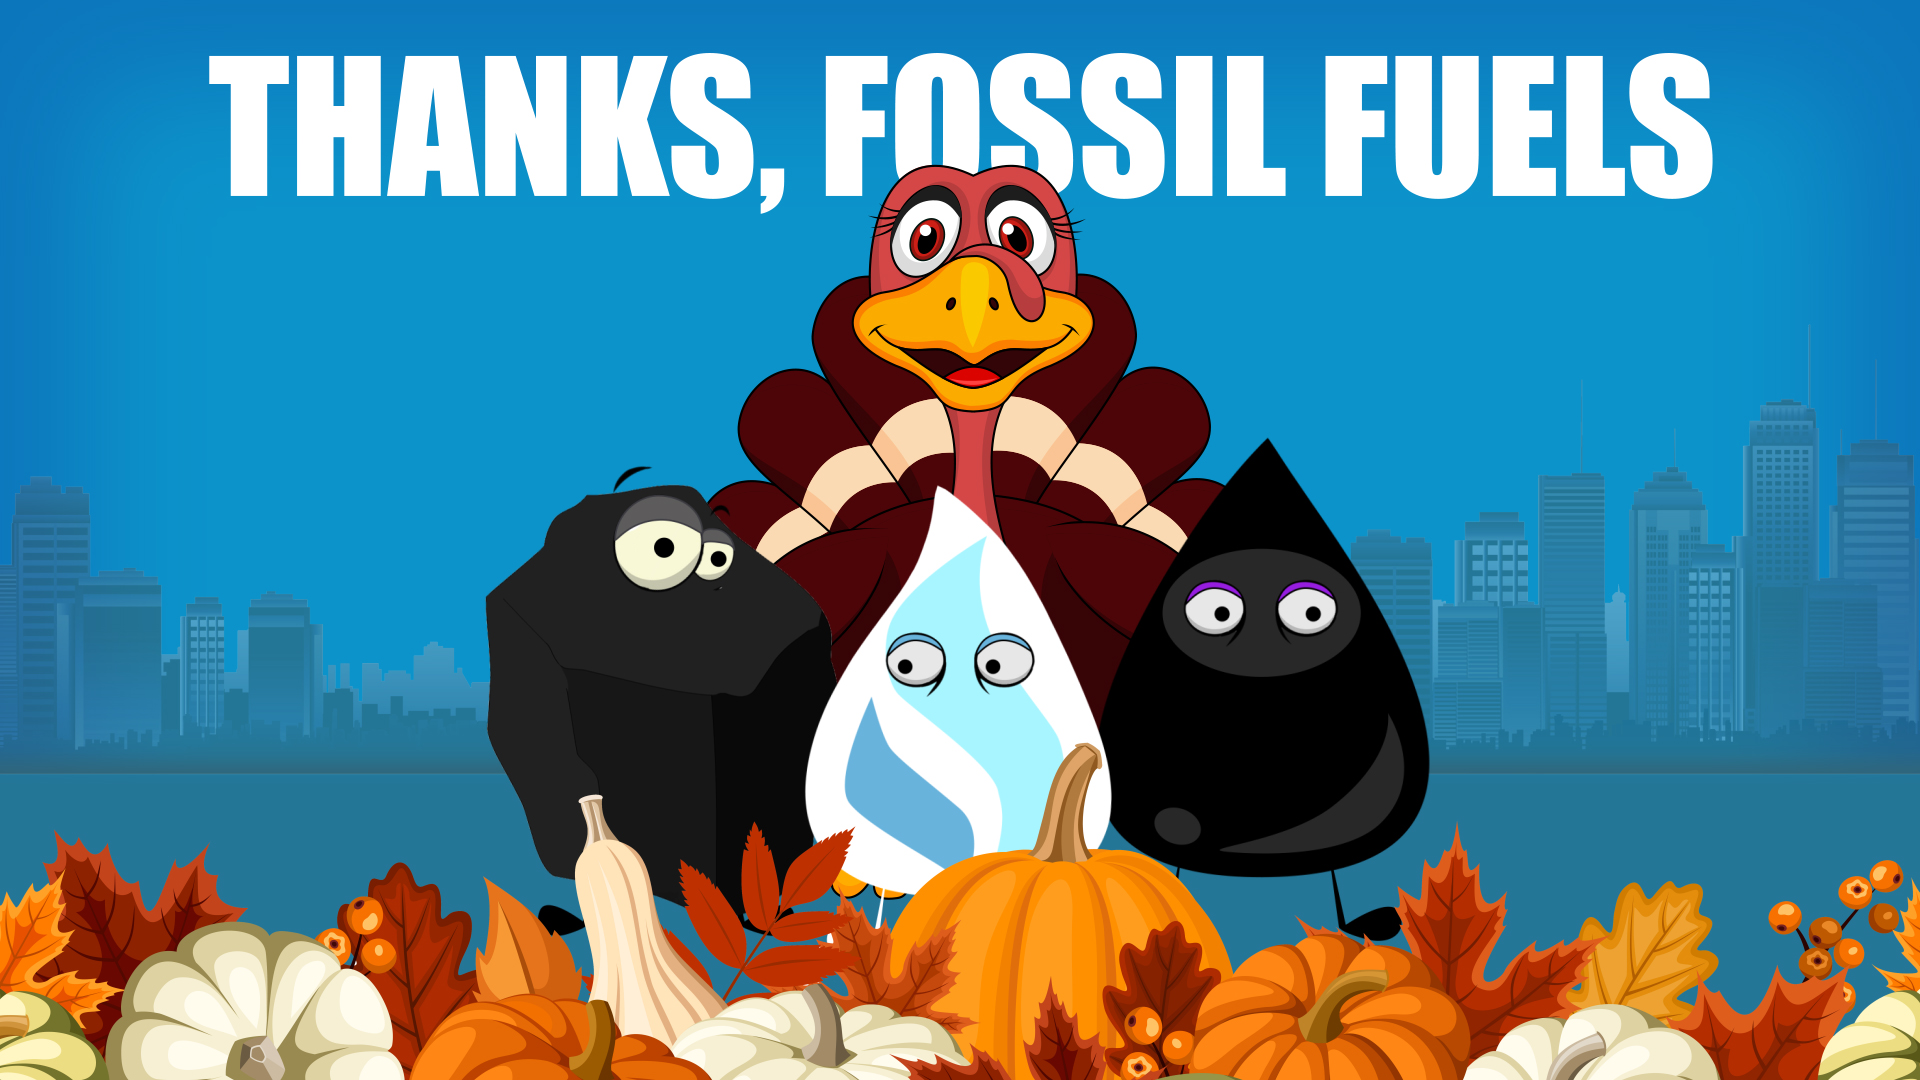 Thanks, Fossil Fuels